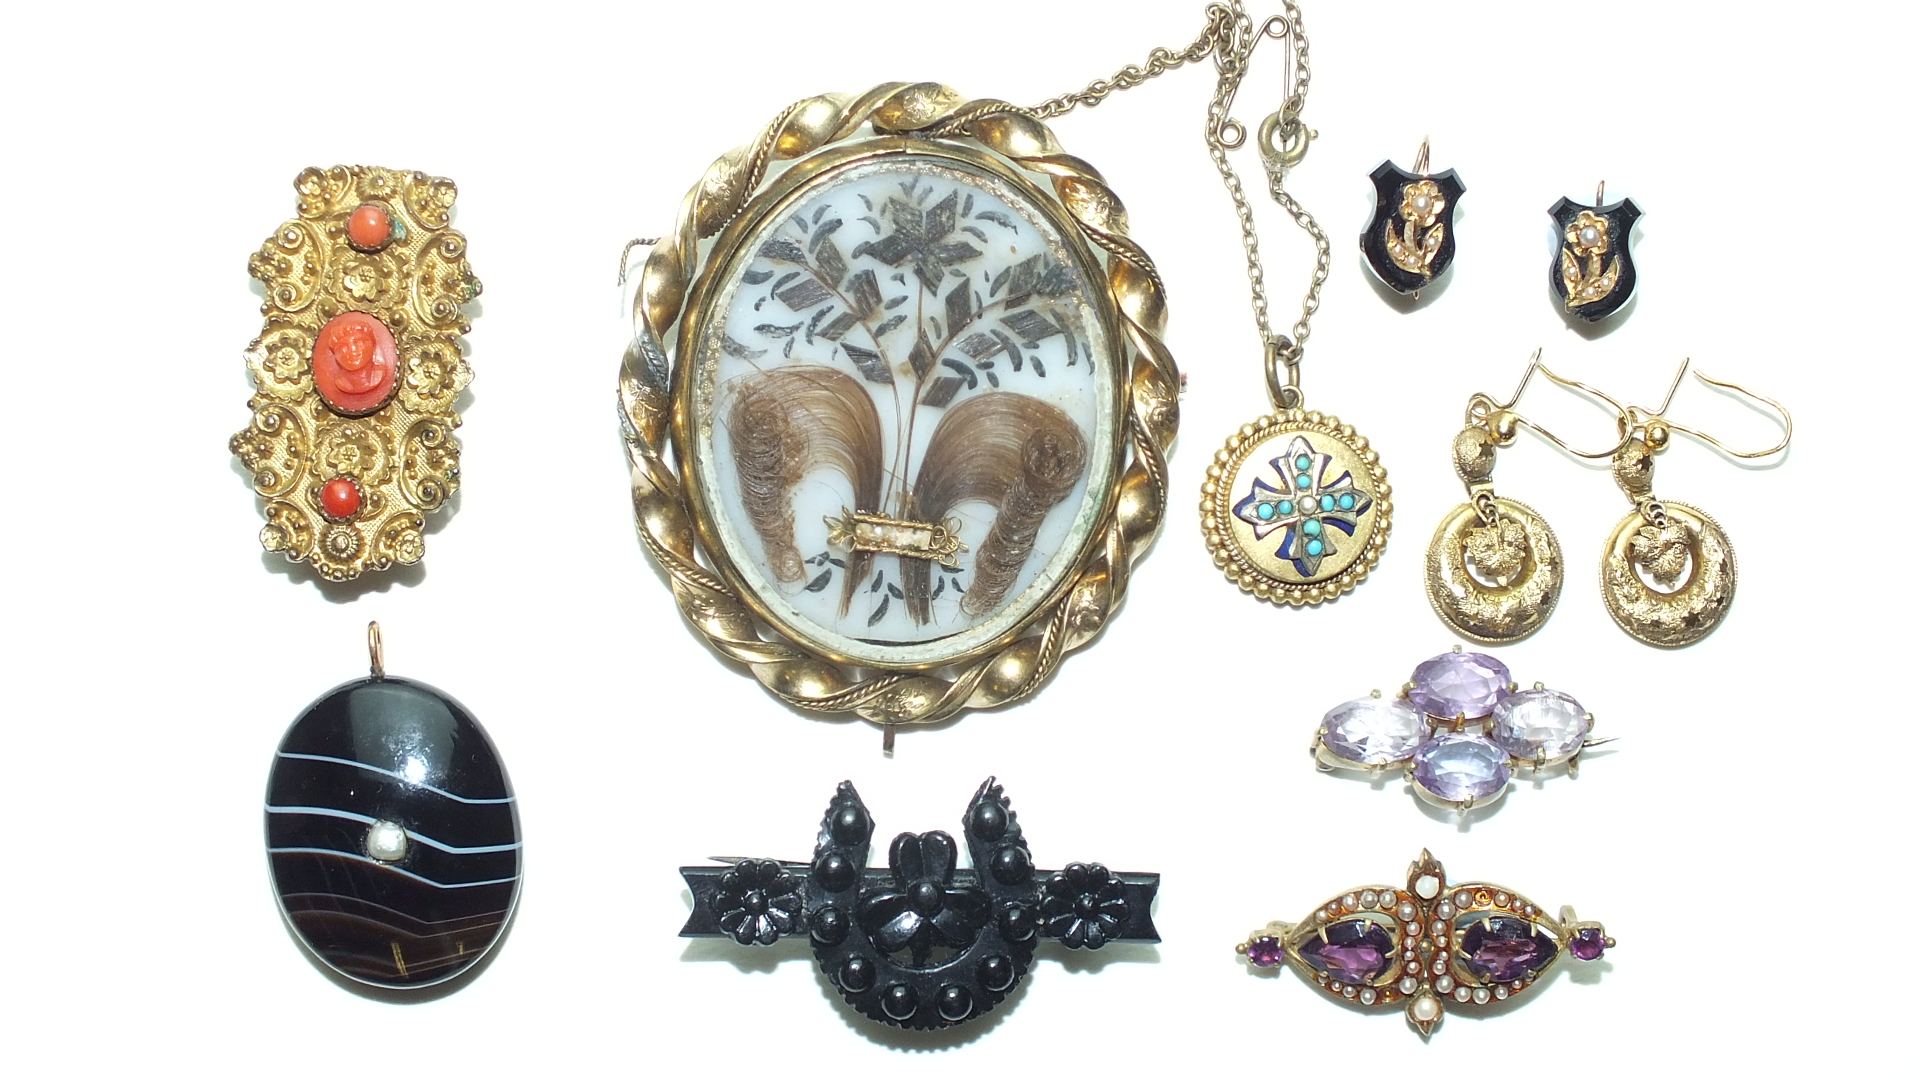 A 19th century gilt metal brooch set coral, a banded pendant, a gilt metal swivel brooch and other